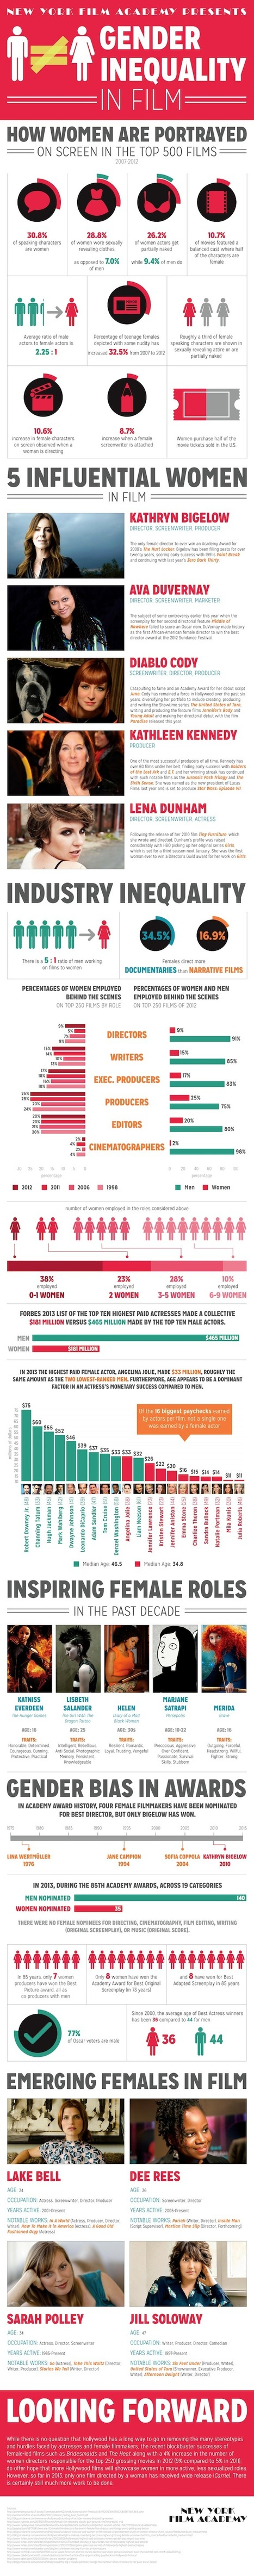 Infographic: Gender Inequality in Hollywood (It's Worse than You ... | Gender Inequality HTS | Scoop.it